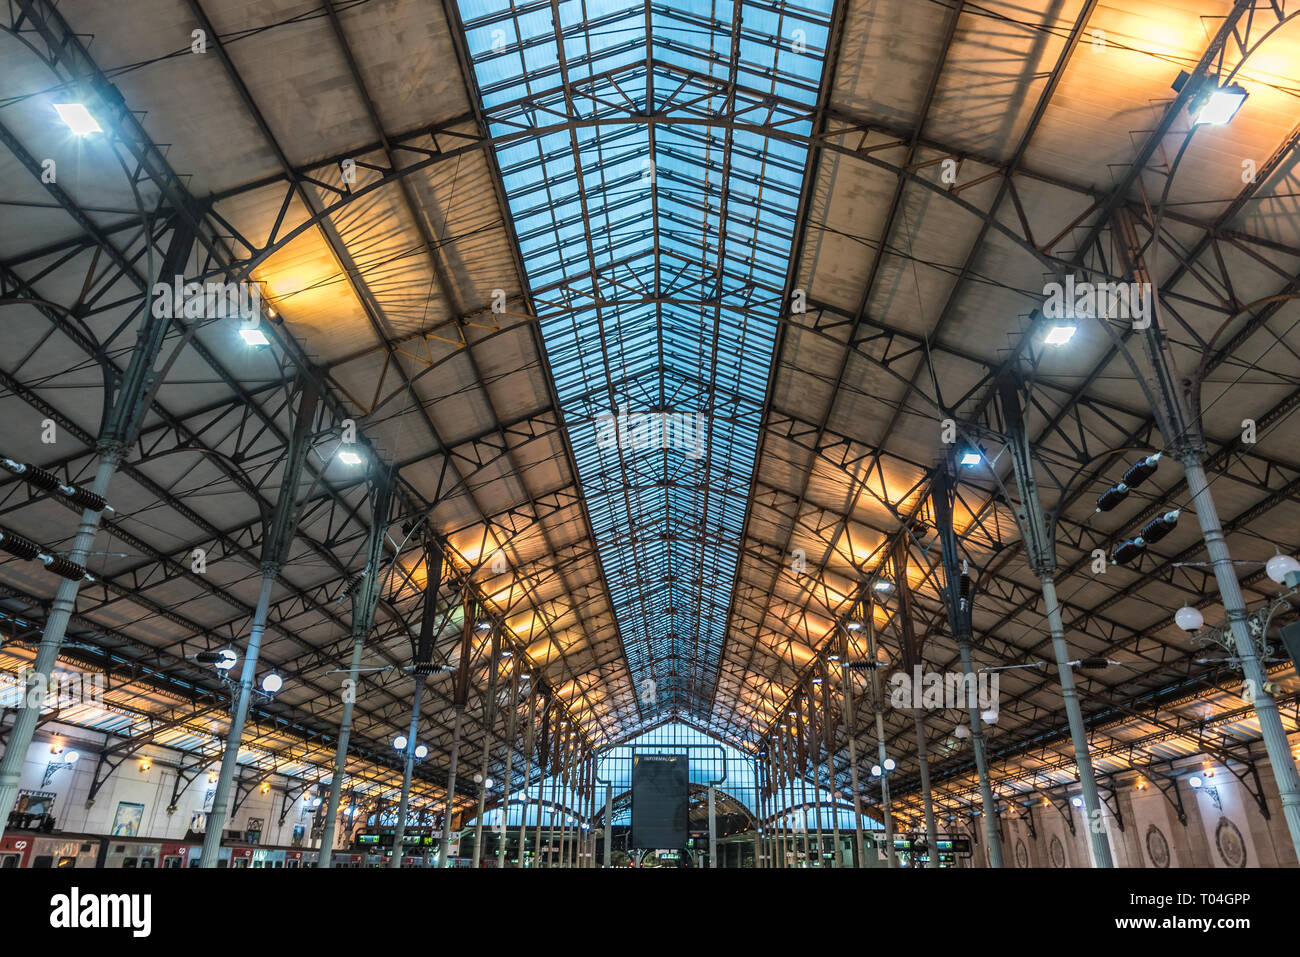 Lisbon Portugal 12 28 2018 Symmetrical Roof And Interior Design Of The Rossio Railway Station Stock Photo Alamy